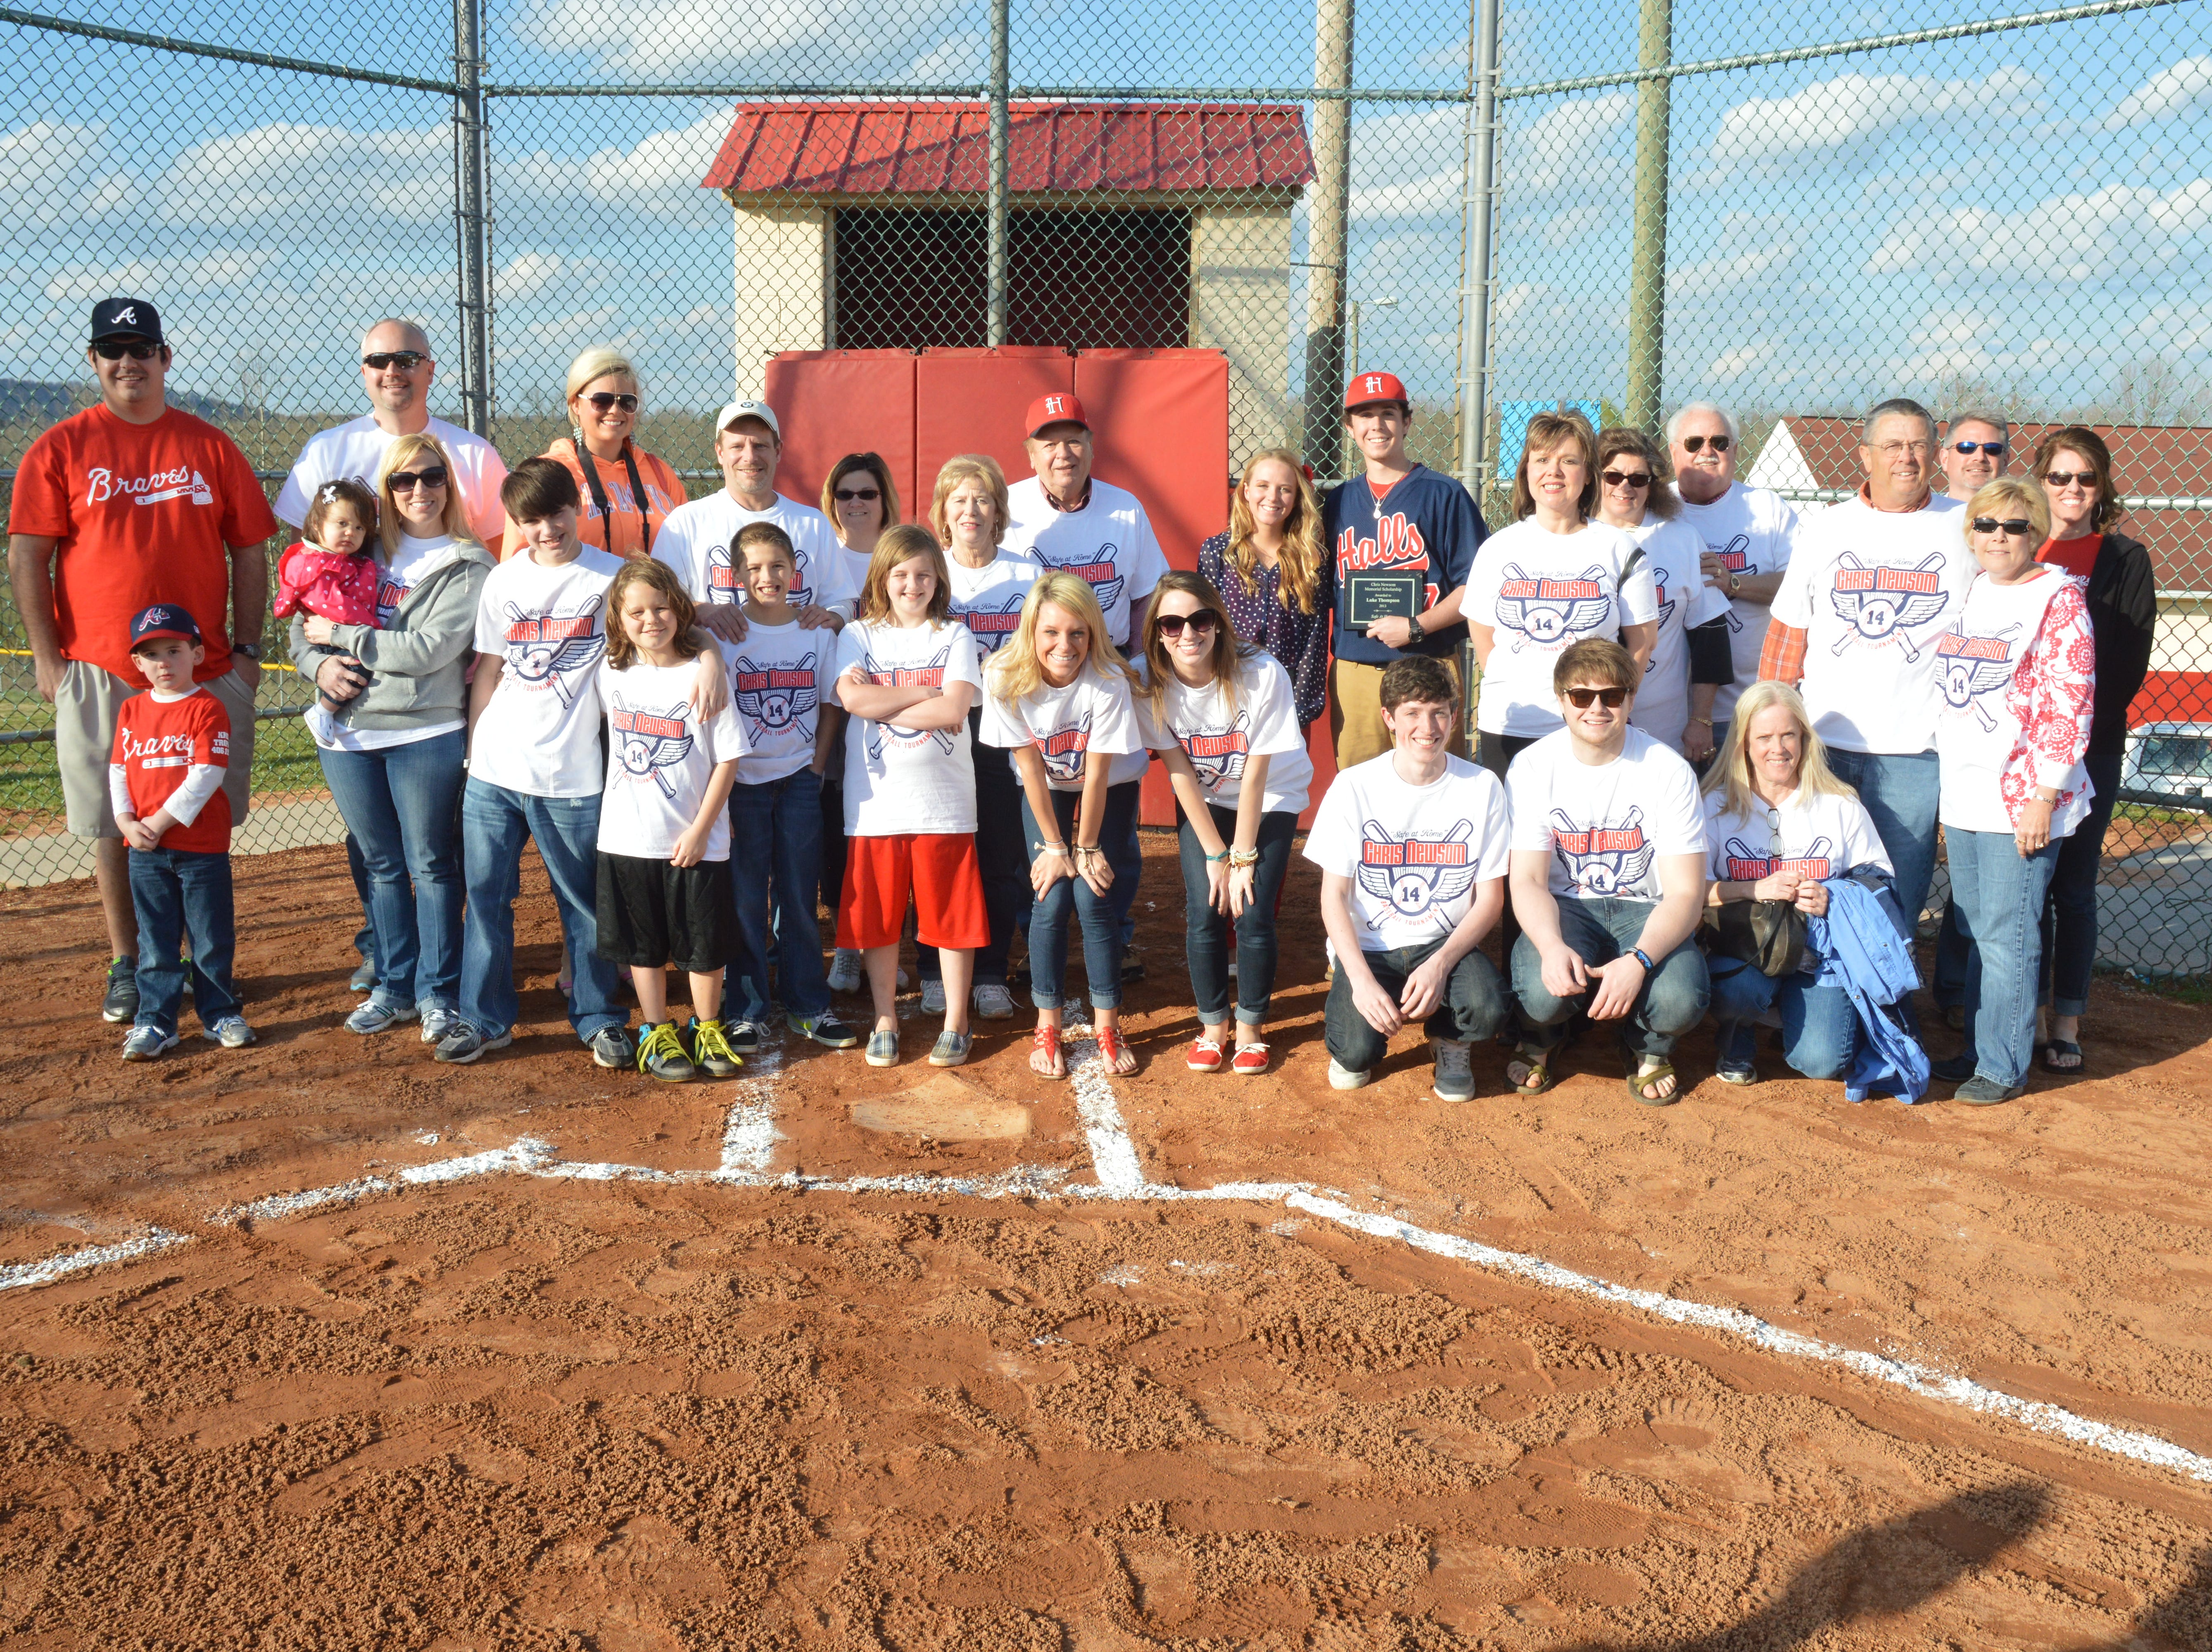 Family and friends gather with Hugh and Mary Newsom at the opening of the 2013 Chris Newsom Memorial Tournament at Halls Park.